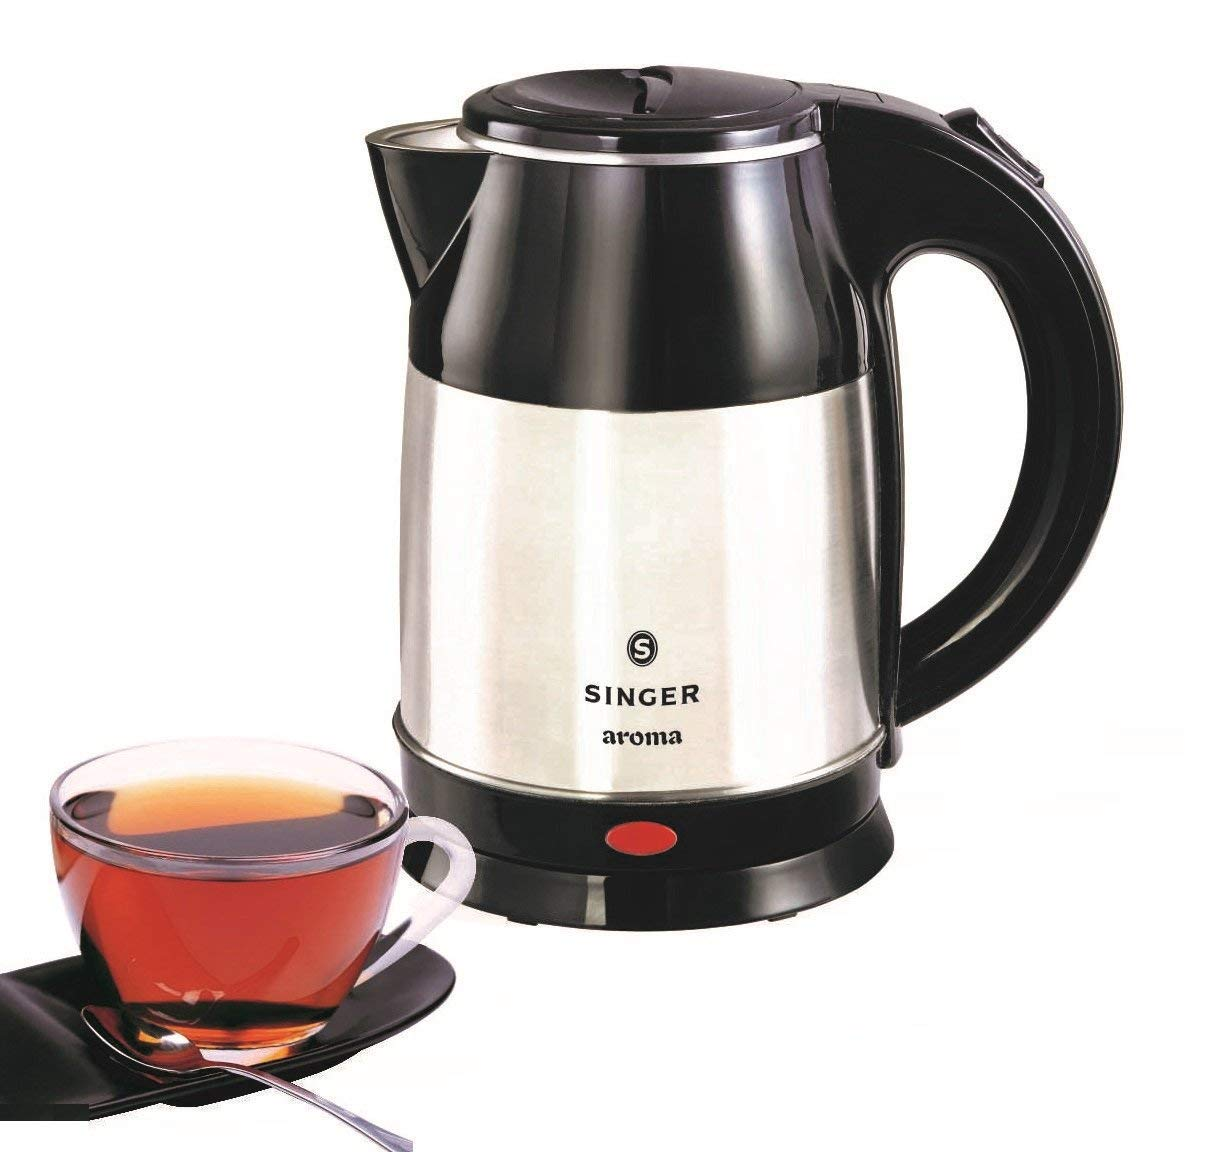 Buy Singer Aroma 1.8-Litre Electric Kettle (Silver/Black) Online at Low Prices in India - Amazon.in